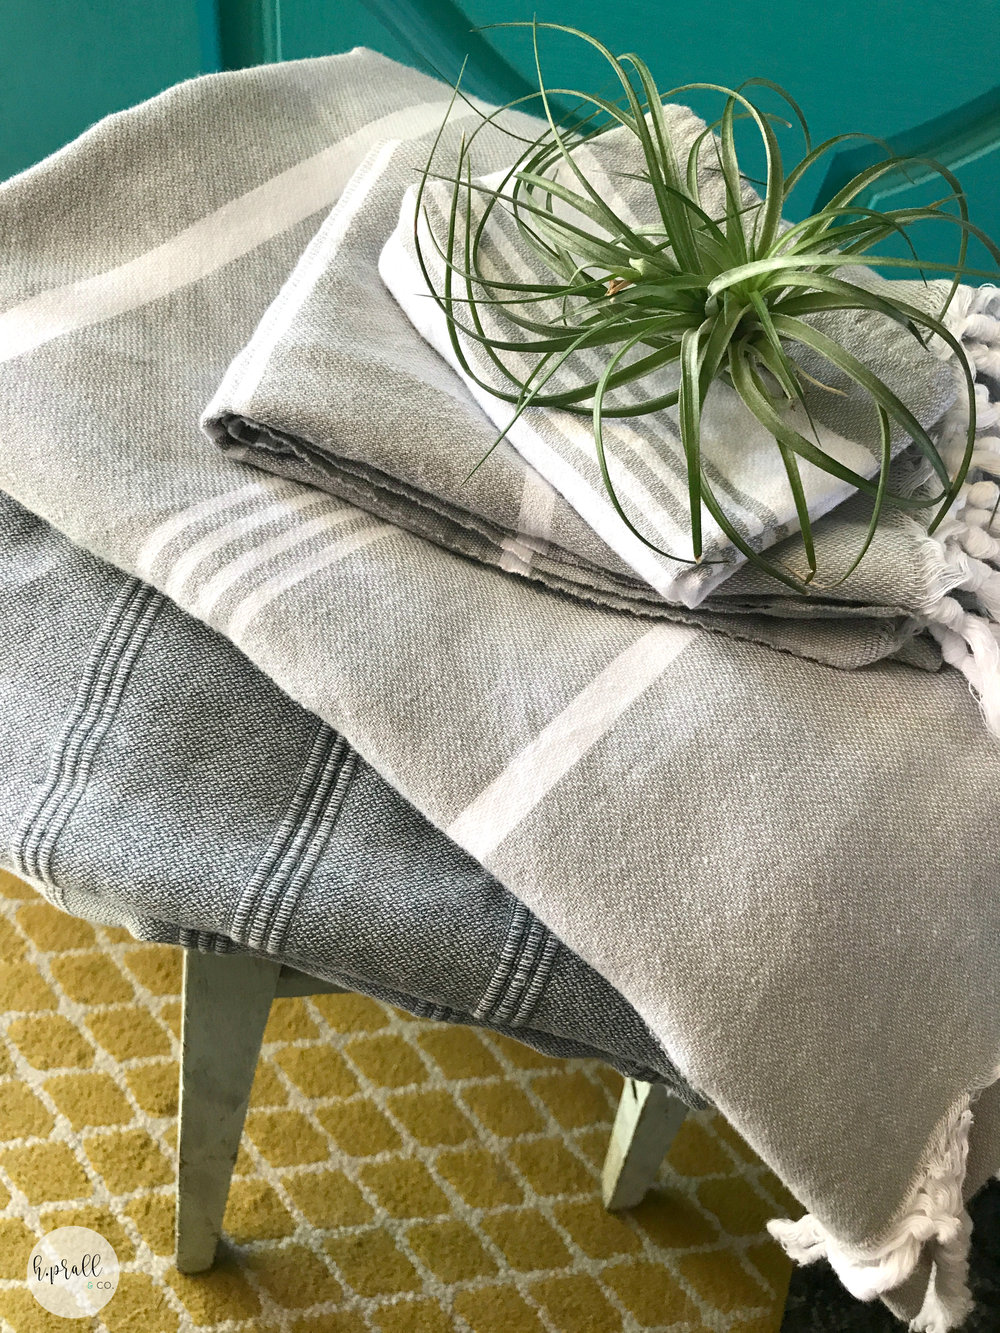 Gray and white striped Turkish towels folded up on top of a bar stool via  H.Prall & Co.